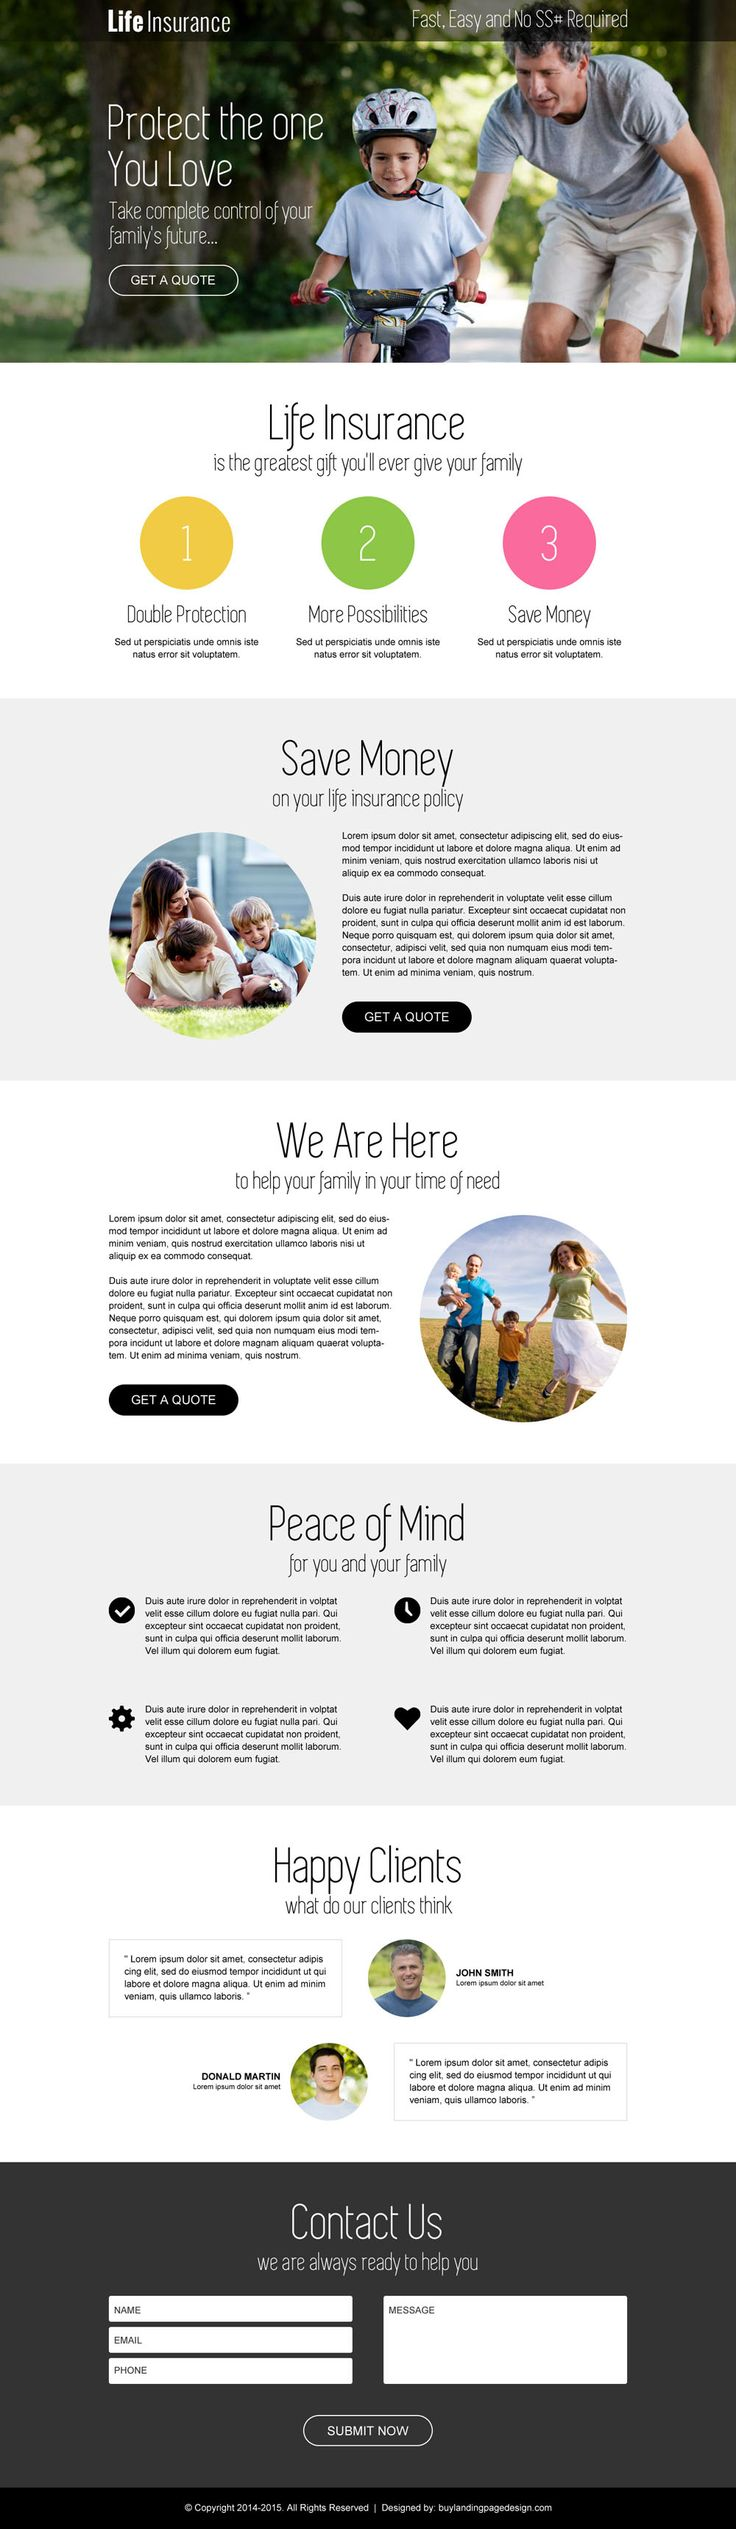 Life Insurance Free Quotes 69 Best Life Insurance Landing Page Design Images On Pinterest